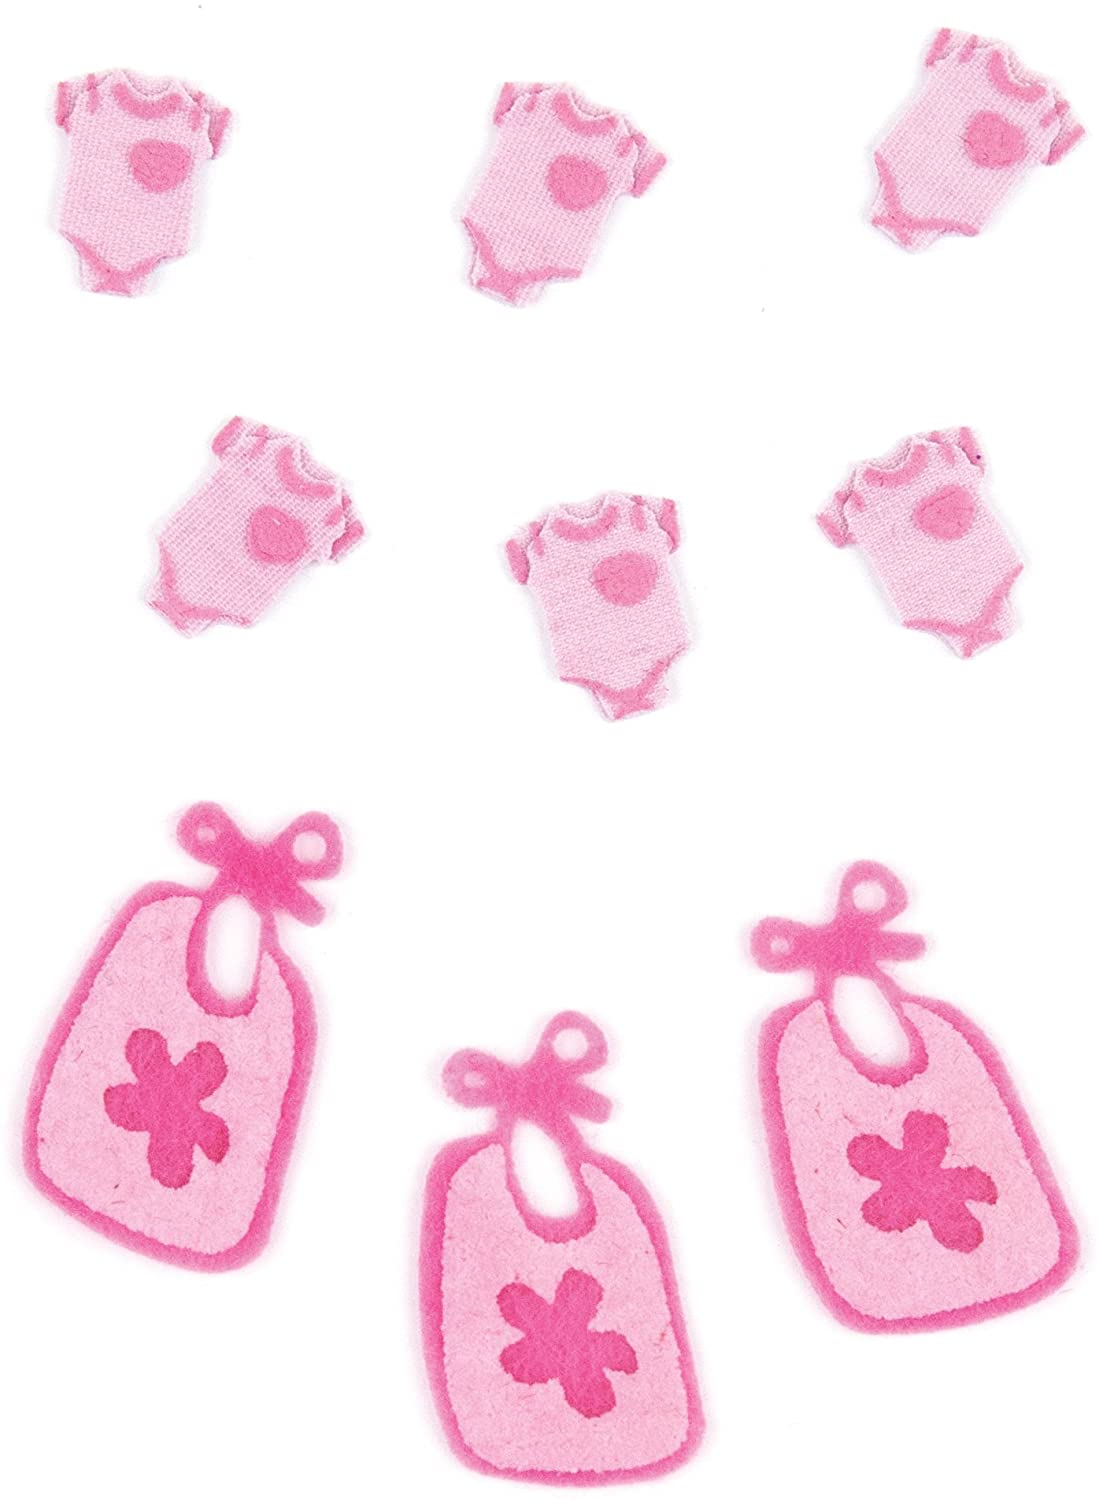 Jolee's Boutique 0015586957532 Baby Girl Pajamas and Bibs 50-00444, Other